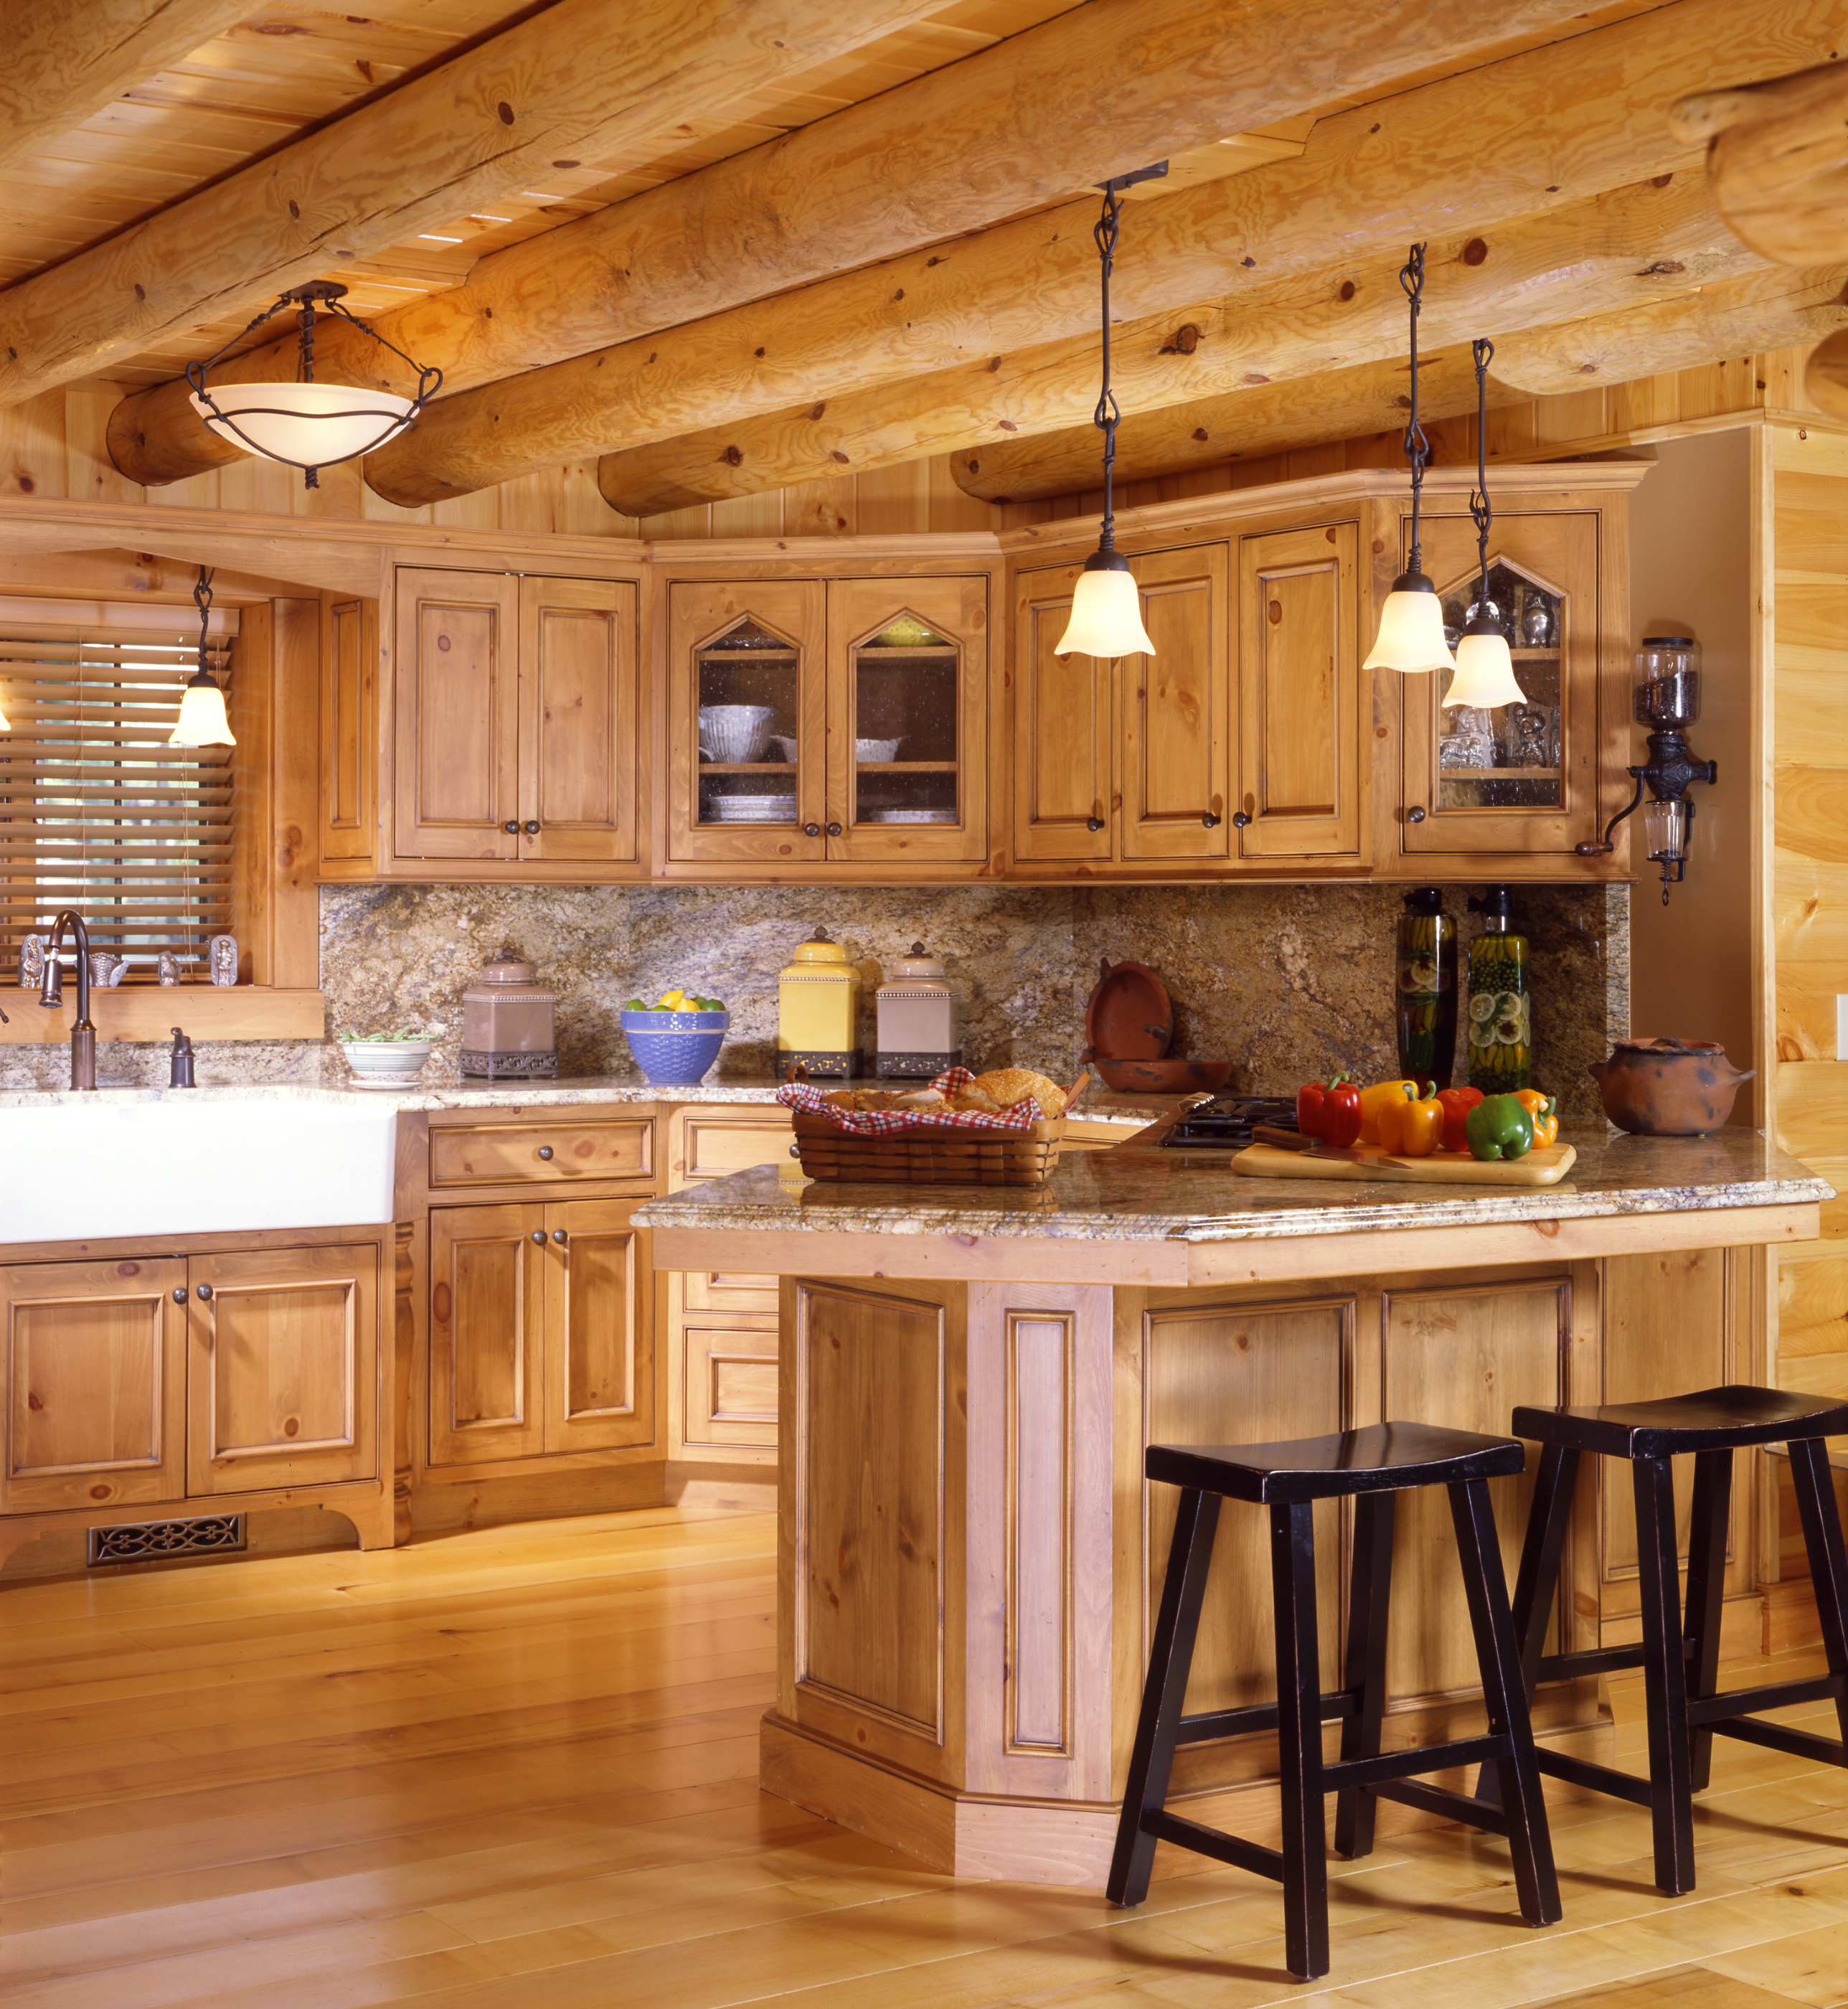 Glamorous Kitchen Cabinets For Log Cabin Home